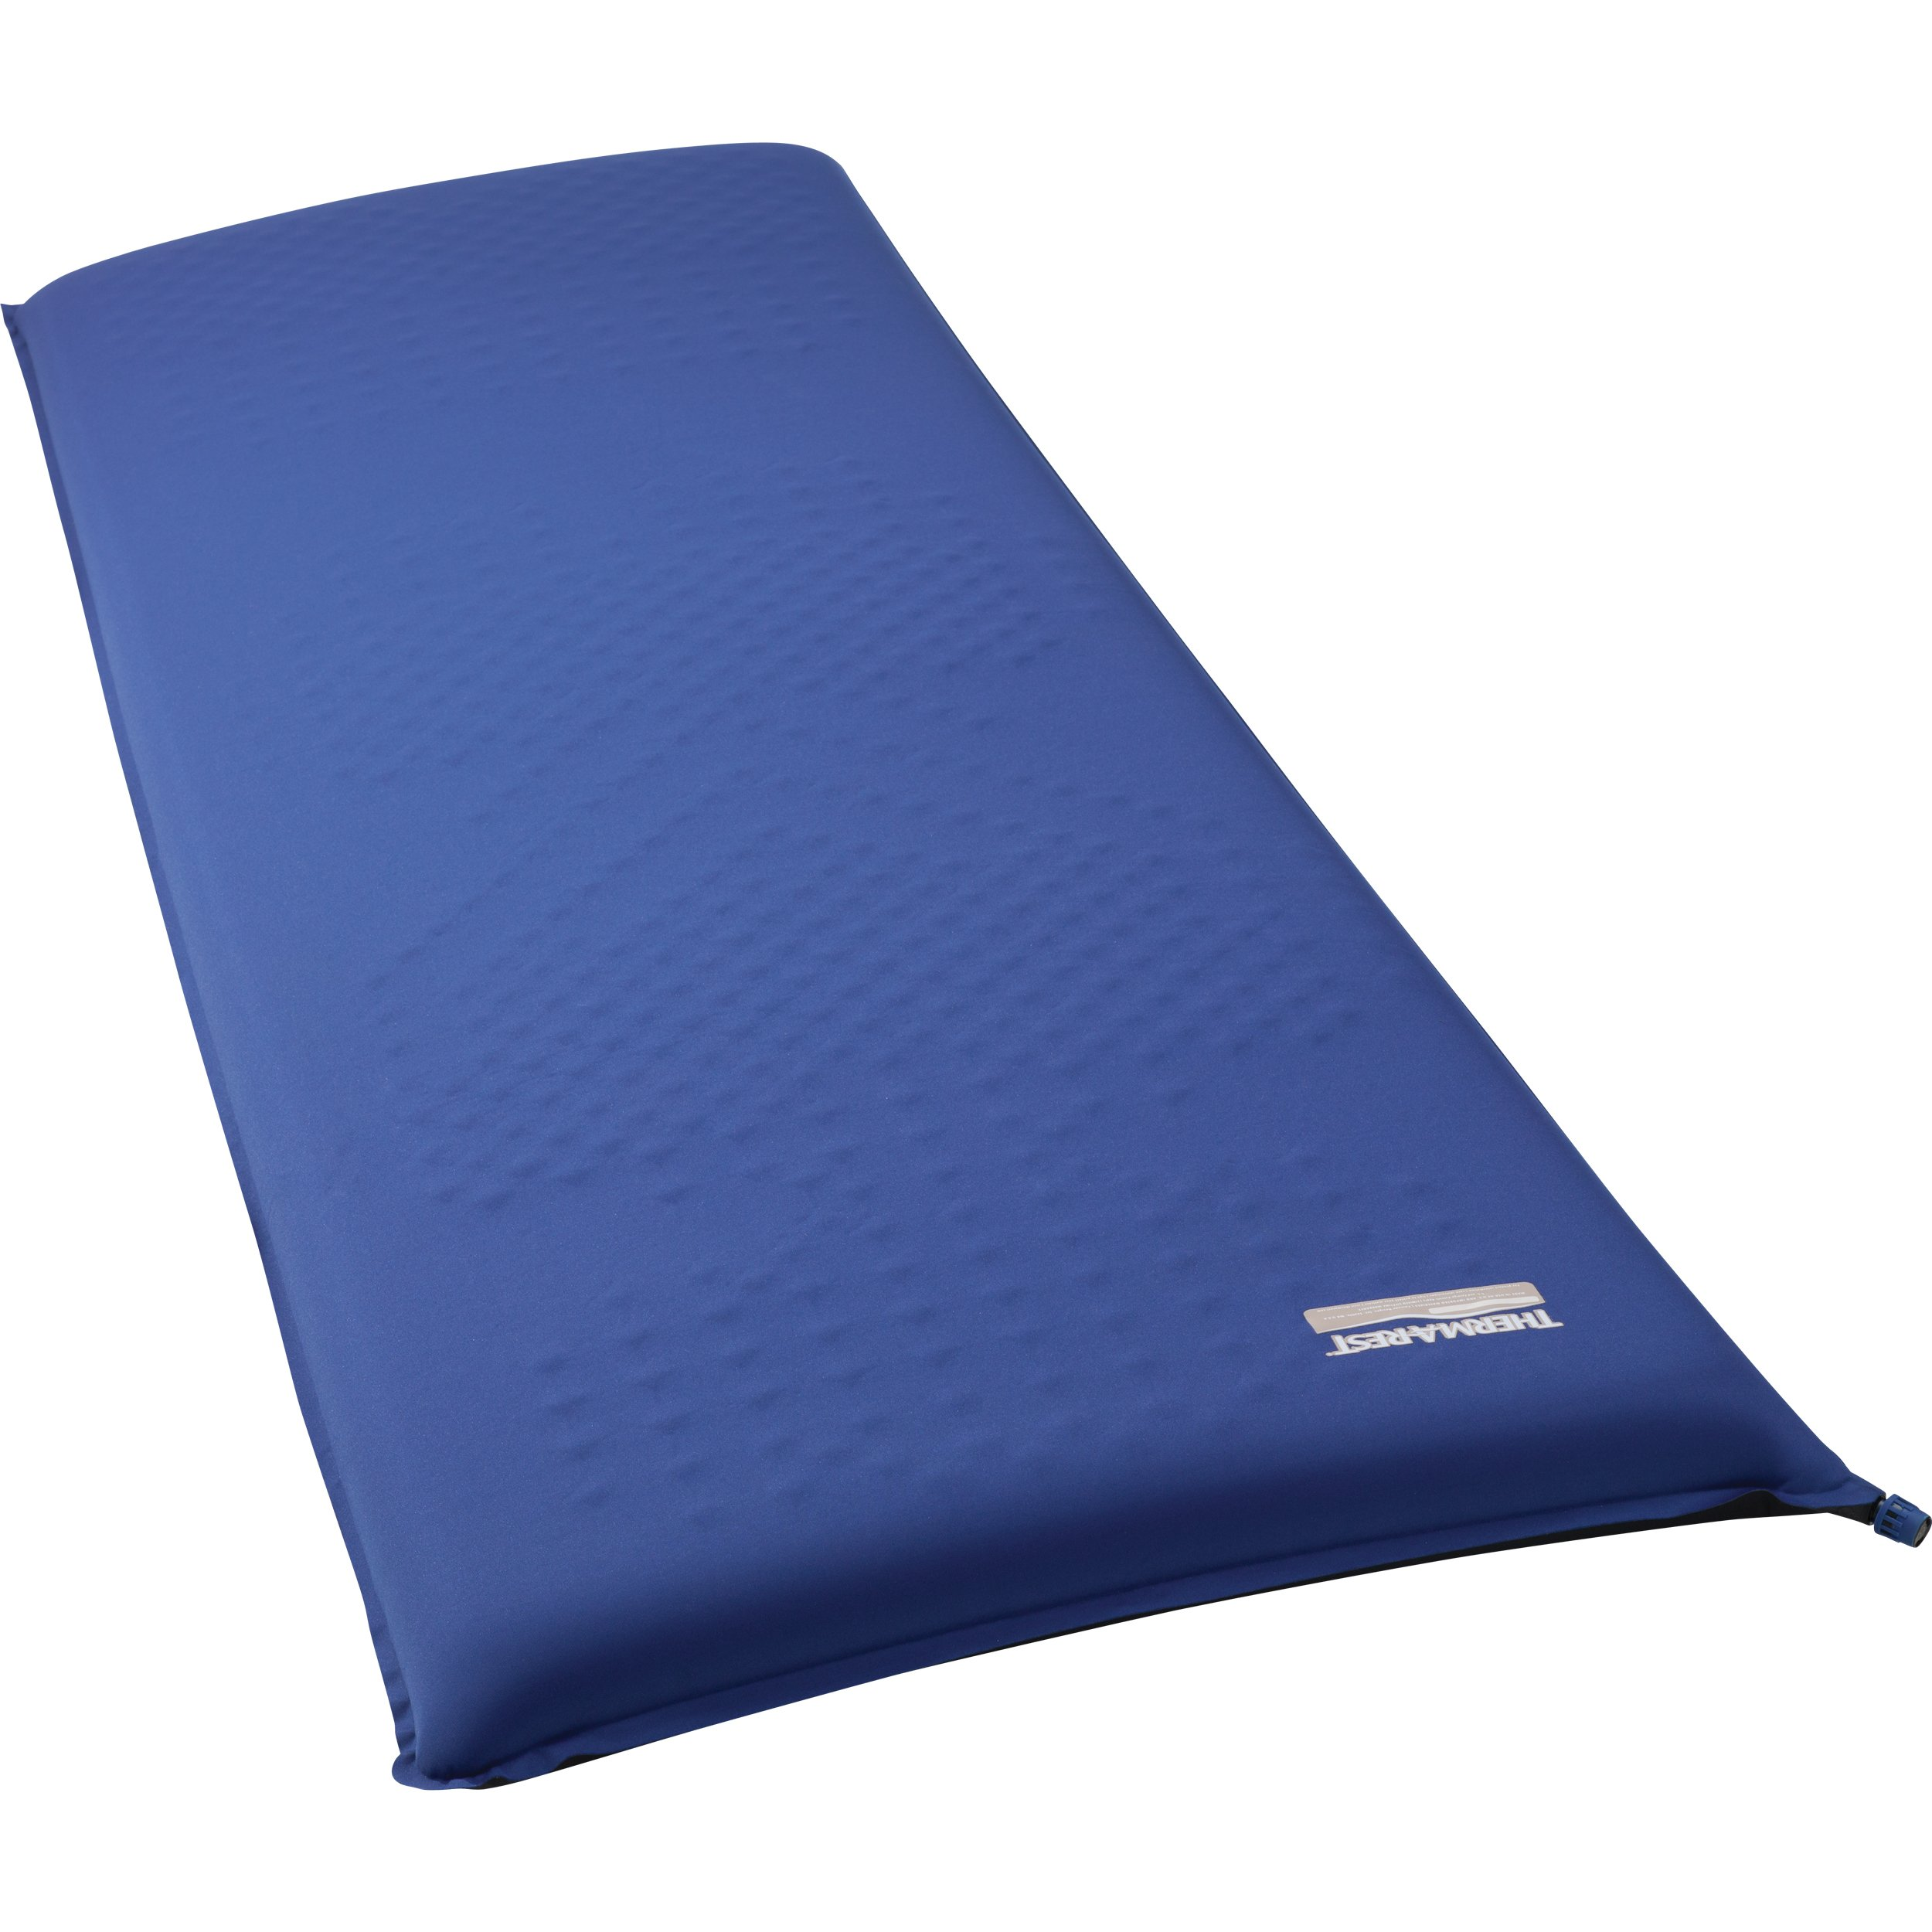 Therm-a-Rest LuxuryMap Self-Inflating Foam Camping Mattress, Regular - 20 x 72 Inches